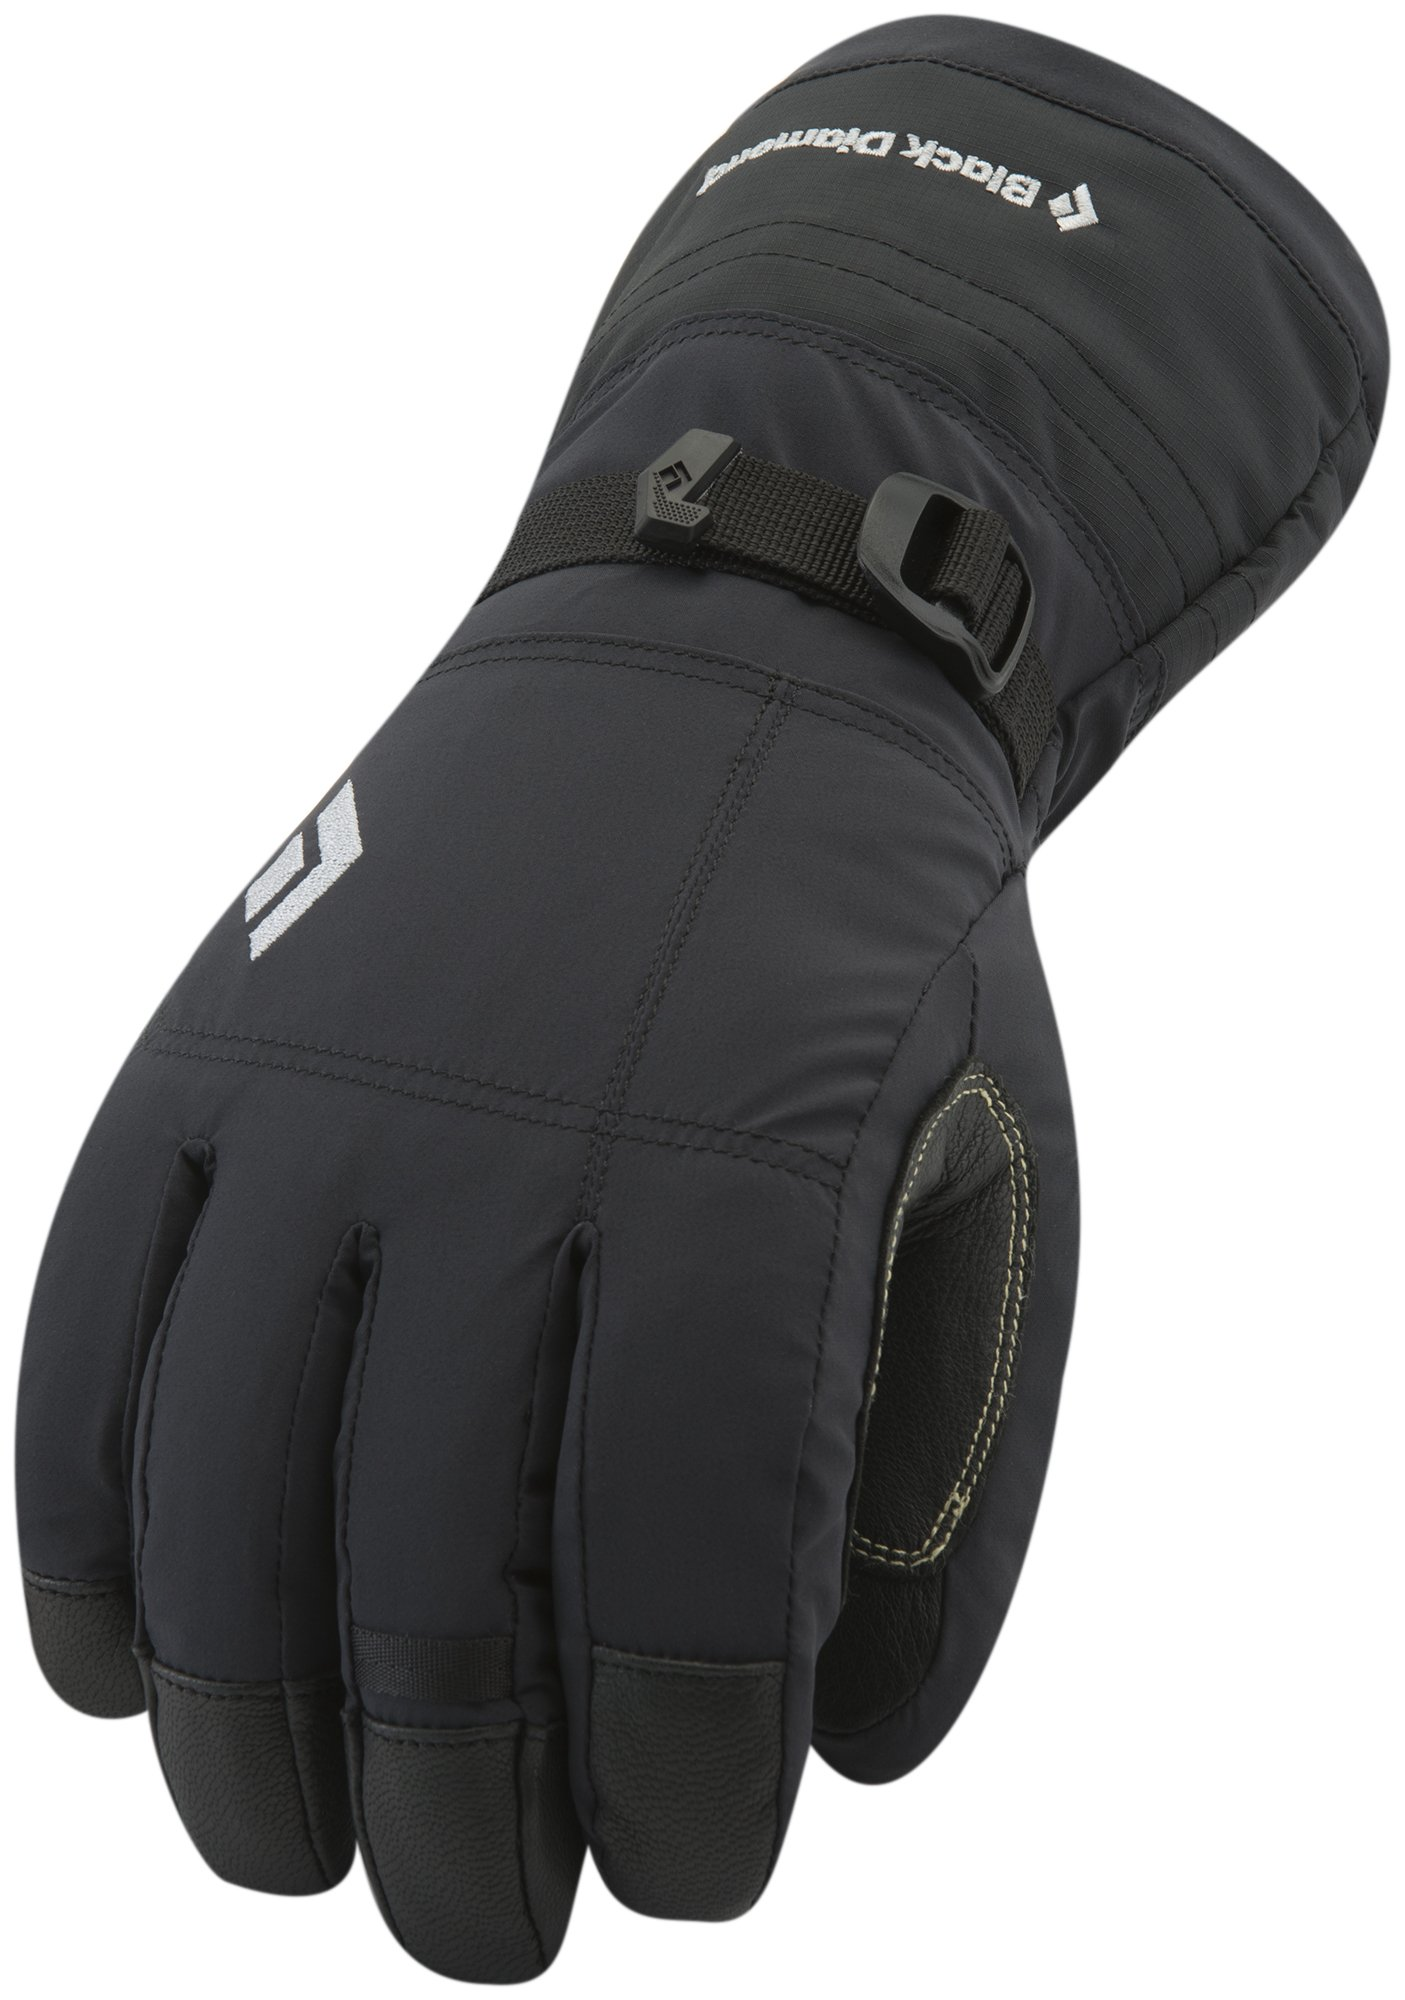 Black Diamond Soloist Cold Weather Gloves, Black, Medium by Black Diamond